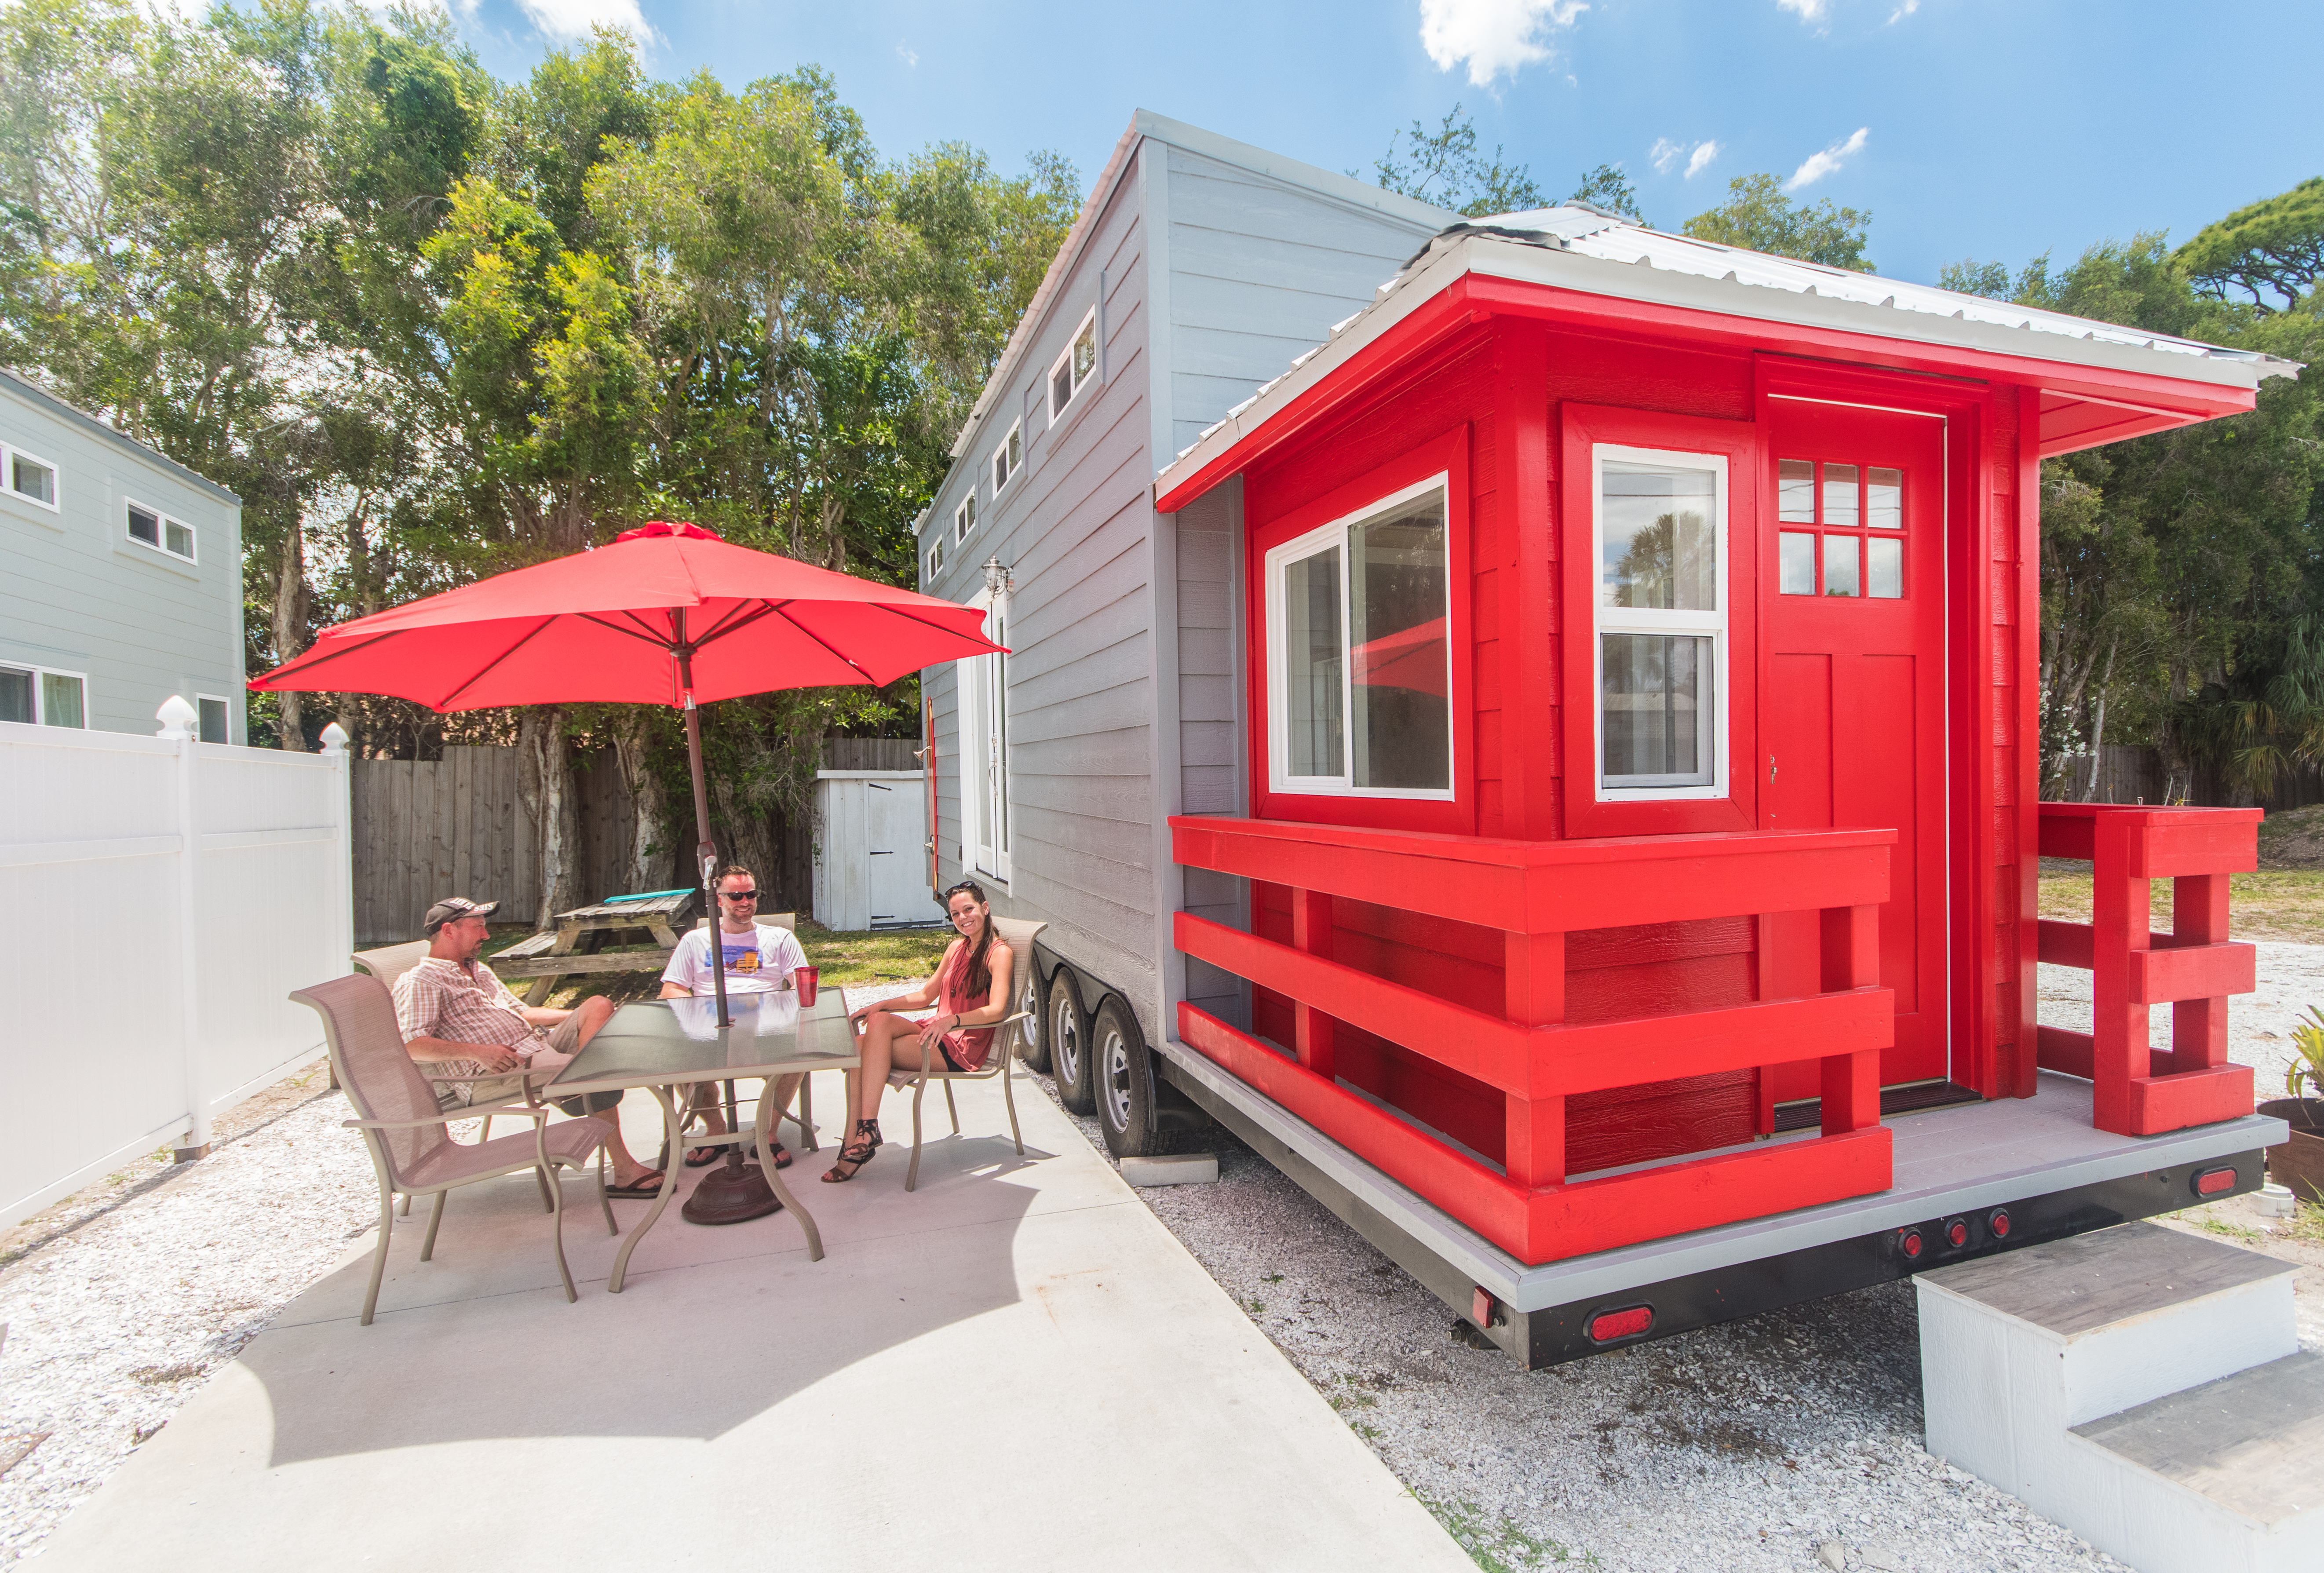 tinyhouse-redtower-peopleattable-0400